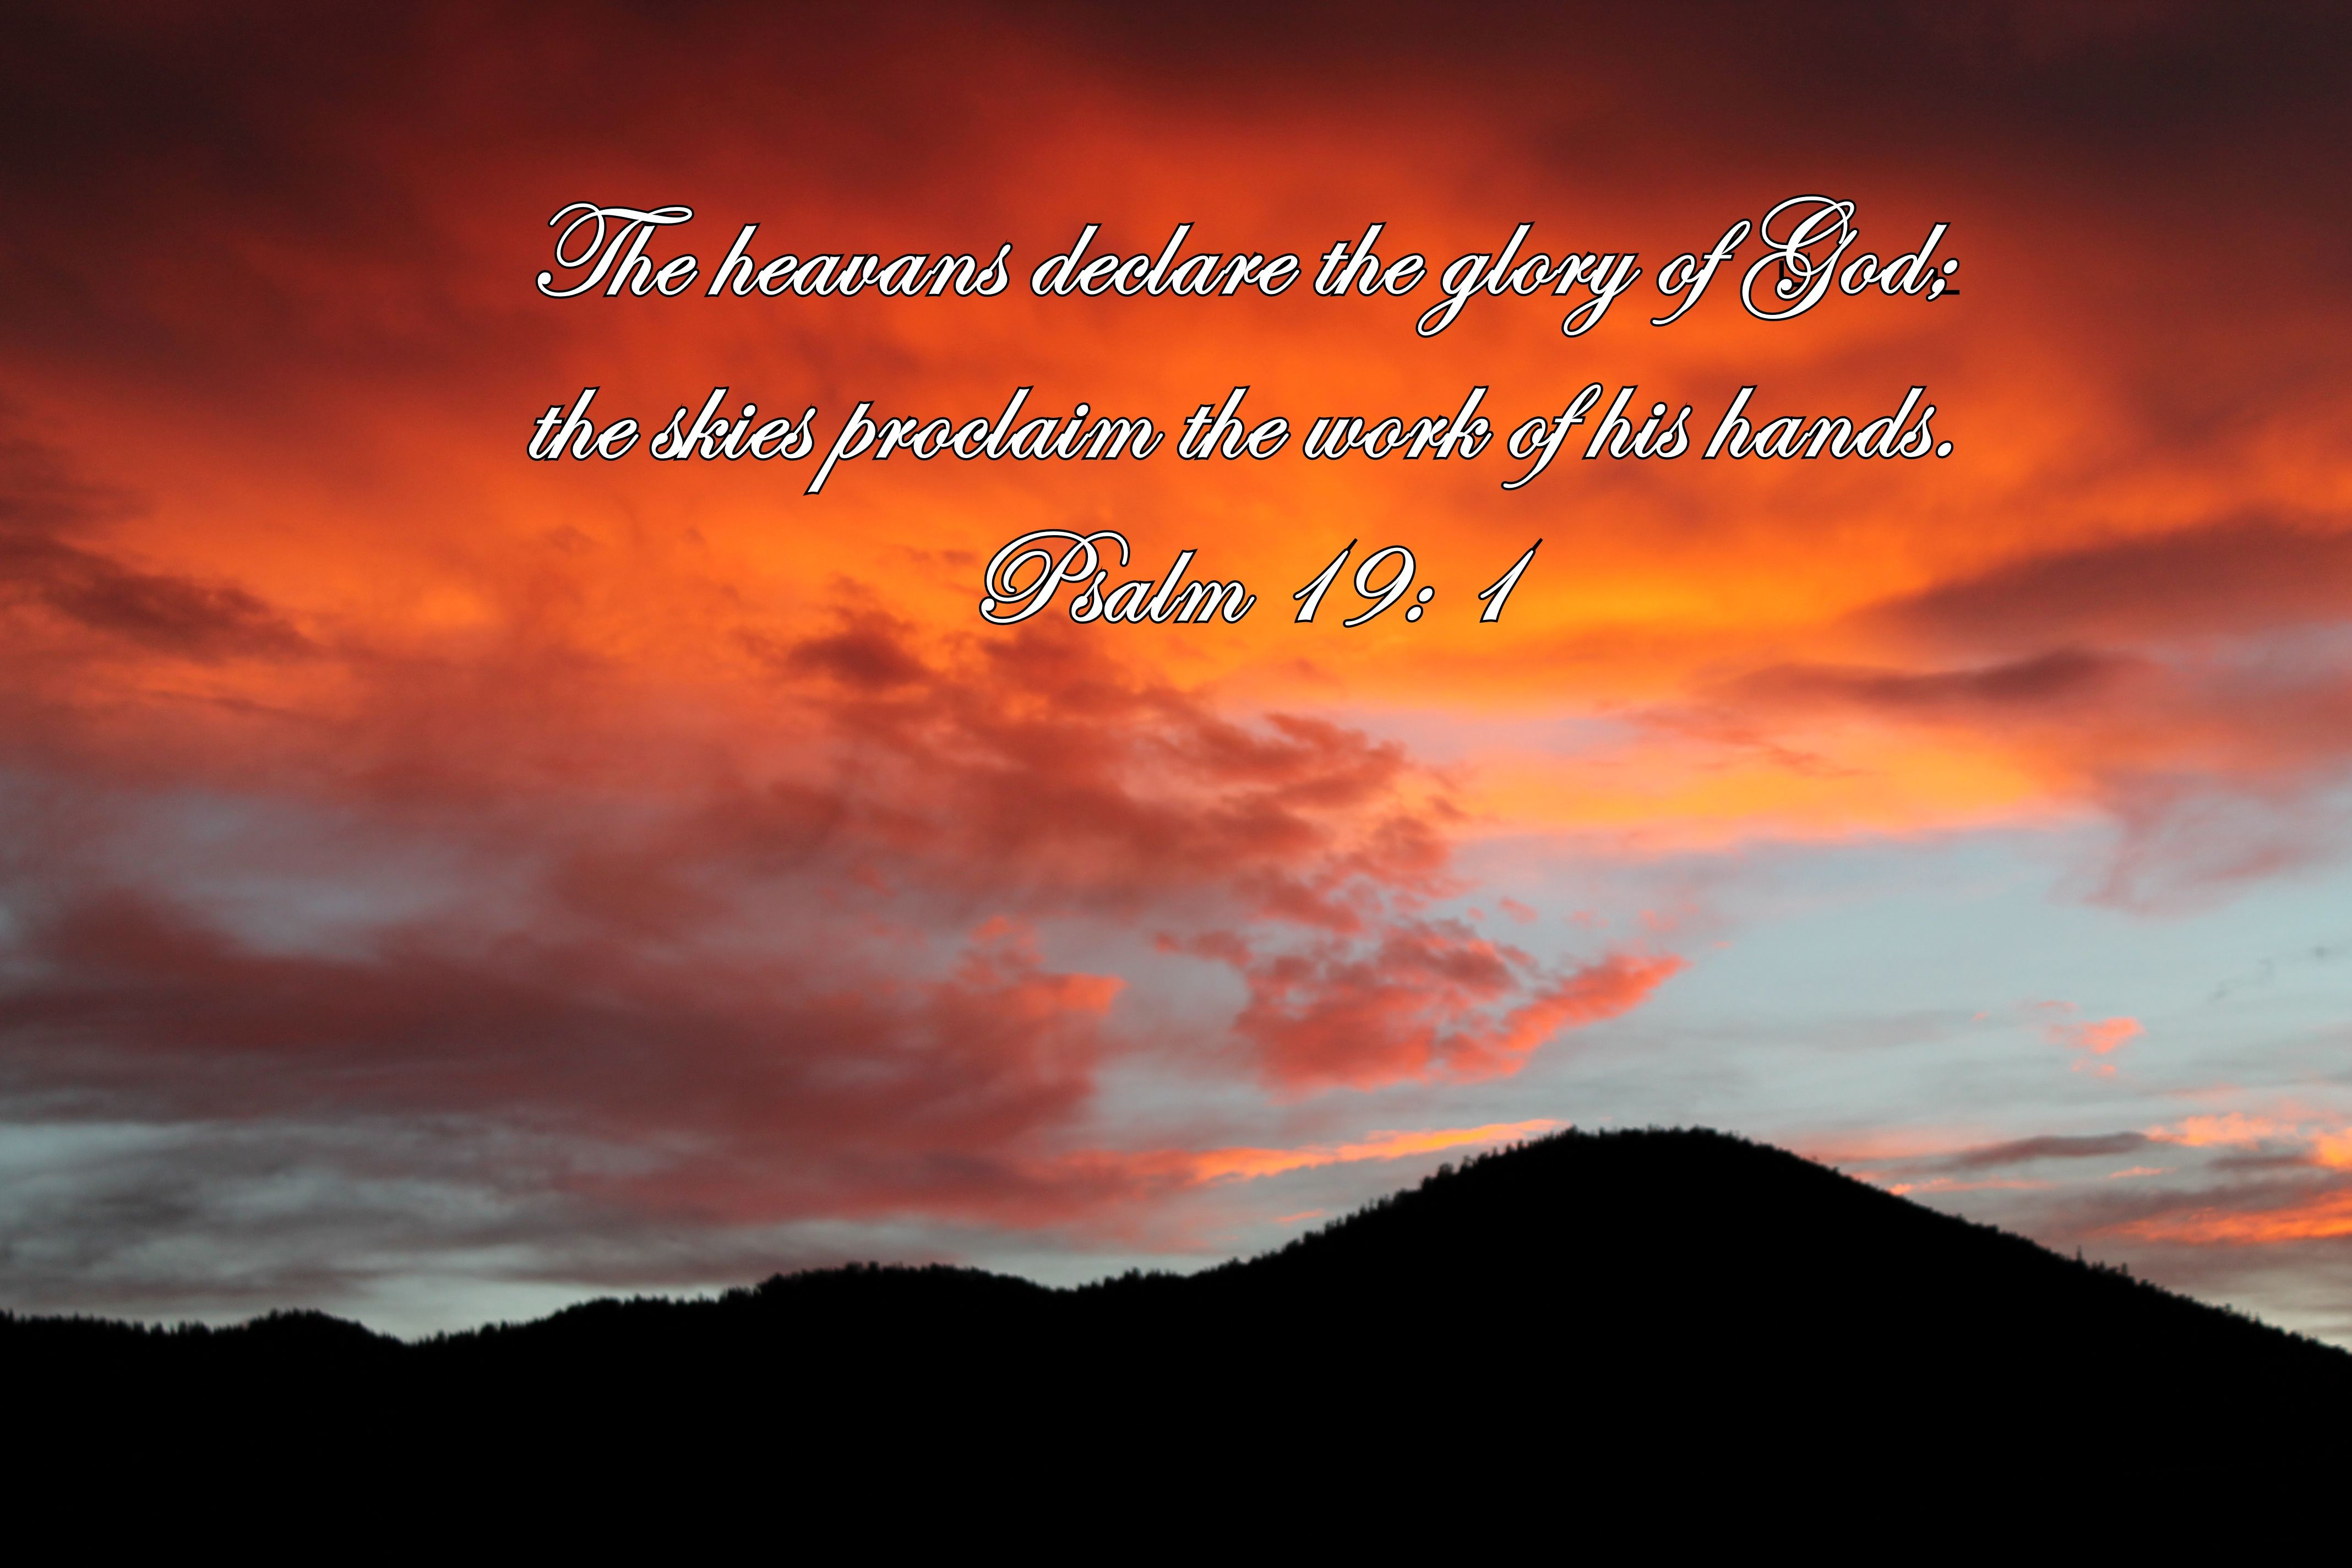 Psalm 19: 1 - The heavens declare the glory of God - UNOMissions - Missionaries - International Ministeries - Dominican Republic - http://www.internationalministries.org/teams/638-mccurdy